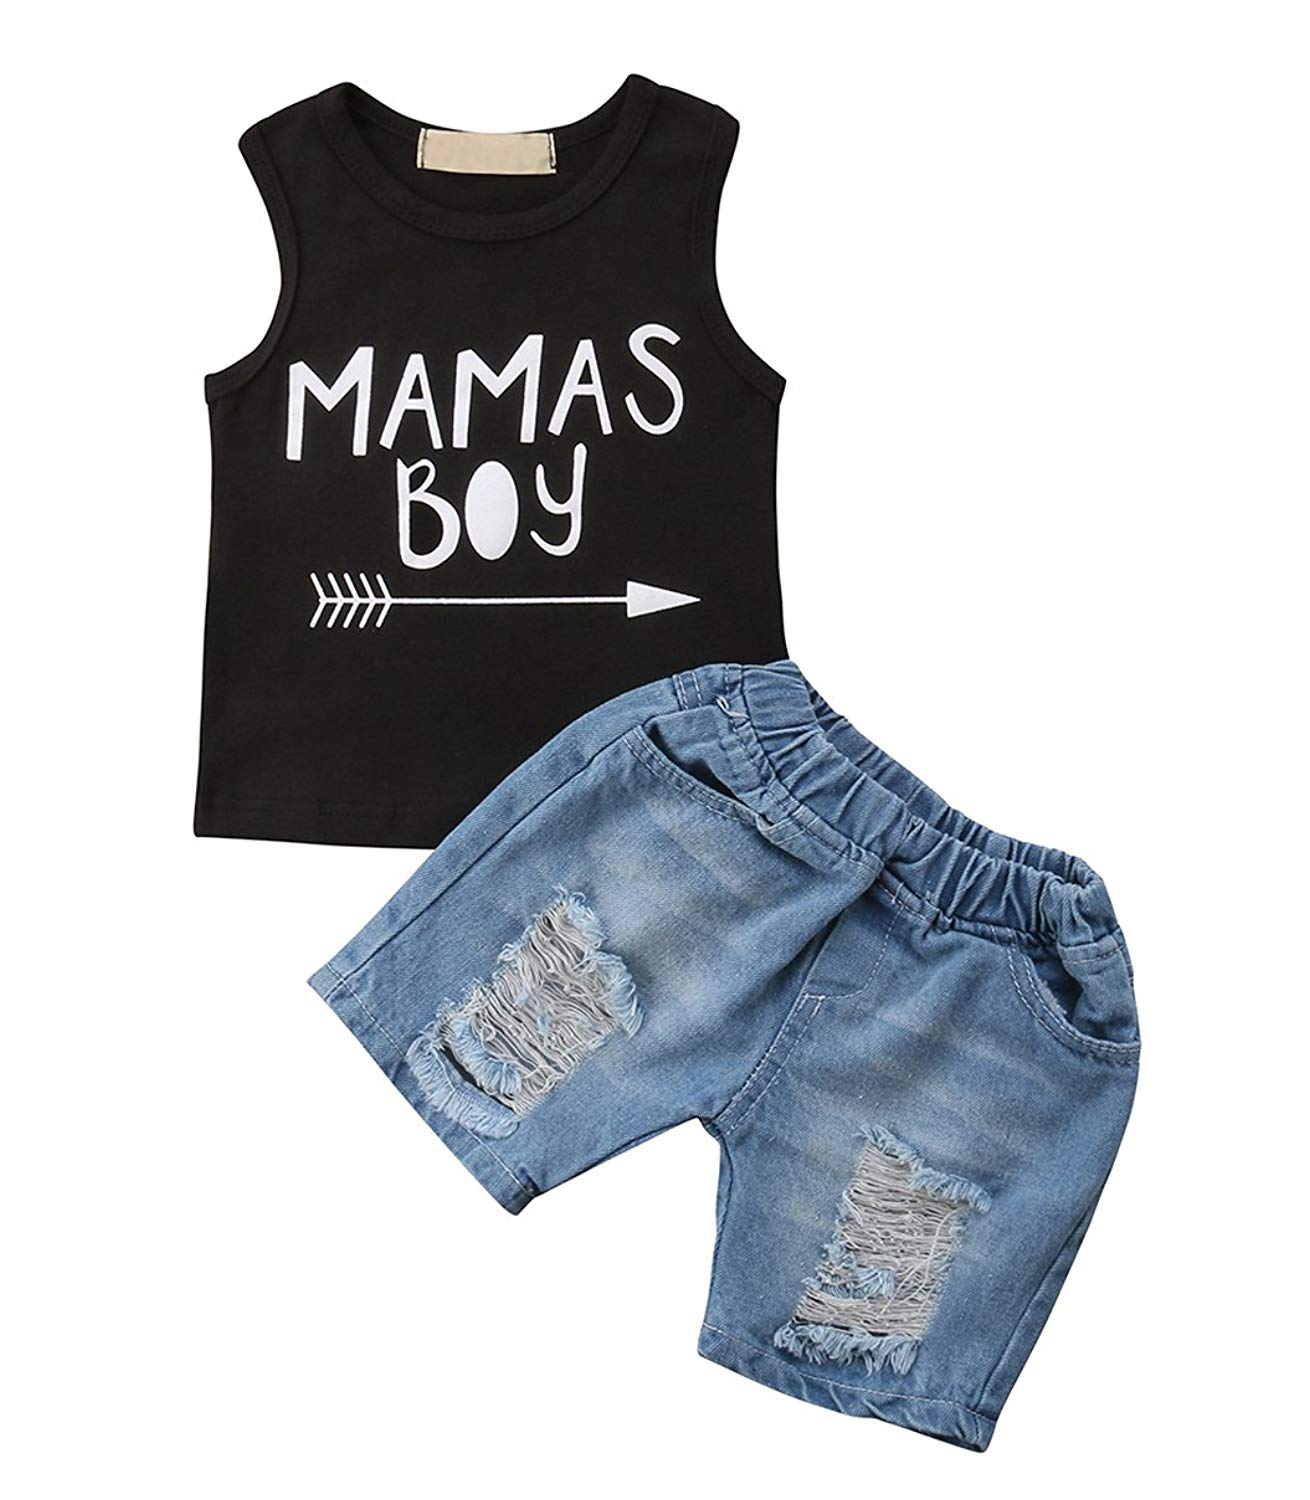 36f47d371f4f Get Quotations · MUNIMINI Mama's Boy Toddler Boys Sleeveless Tank Vest Top  and Ripped Jeans Short Outfit